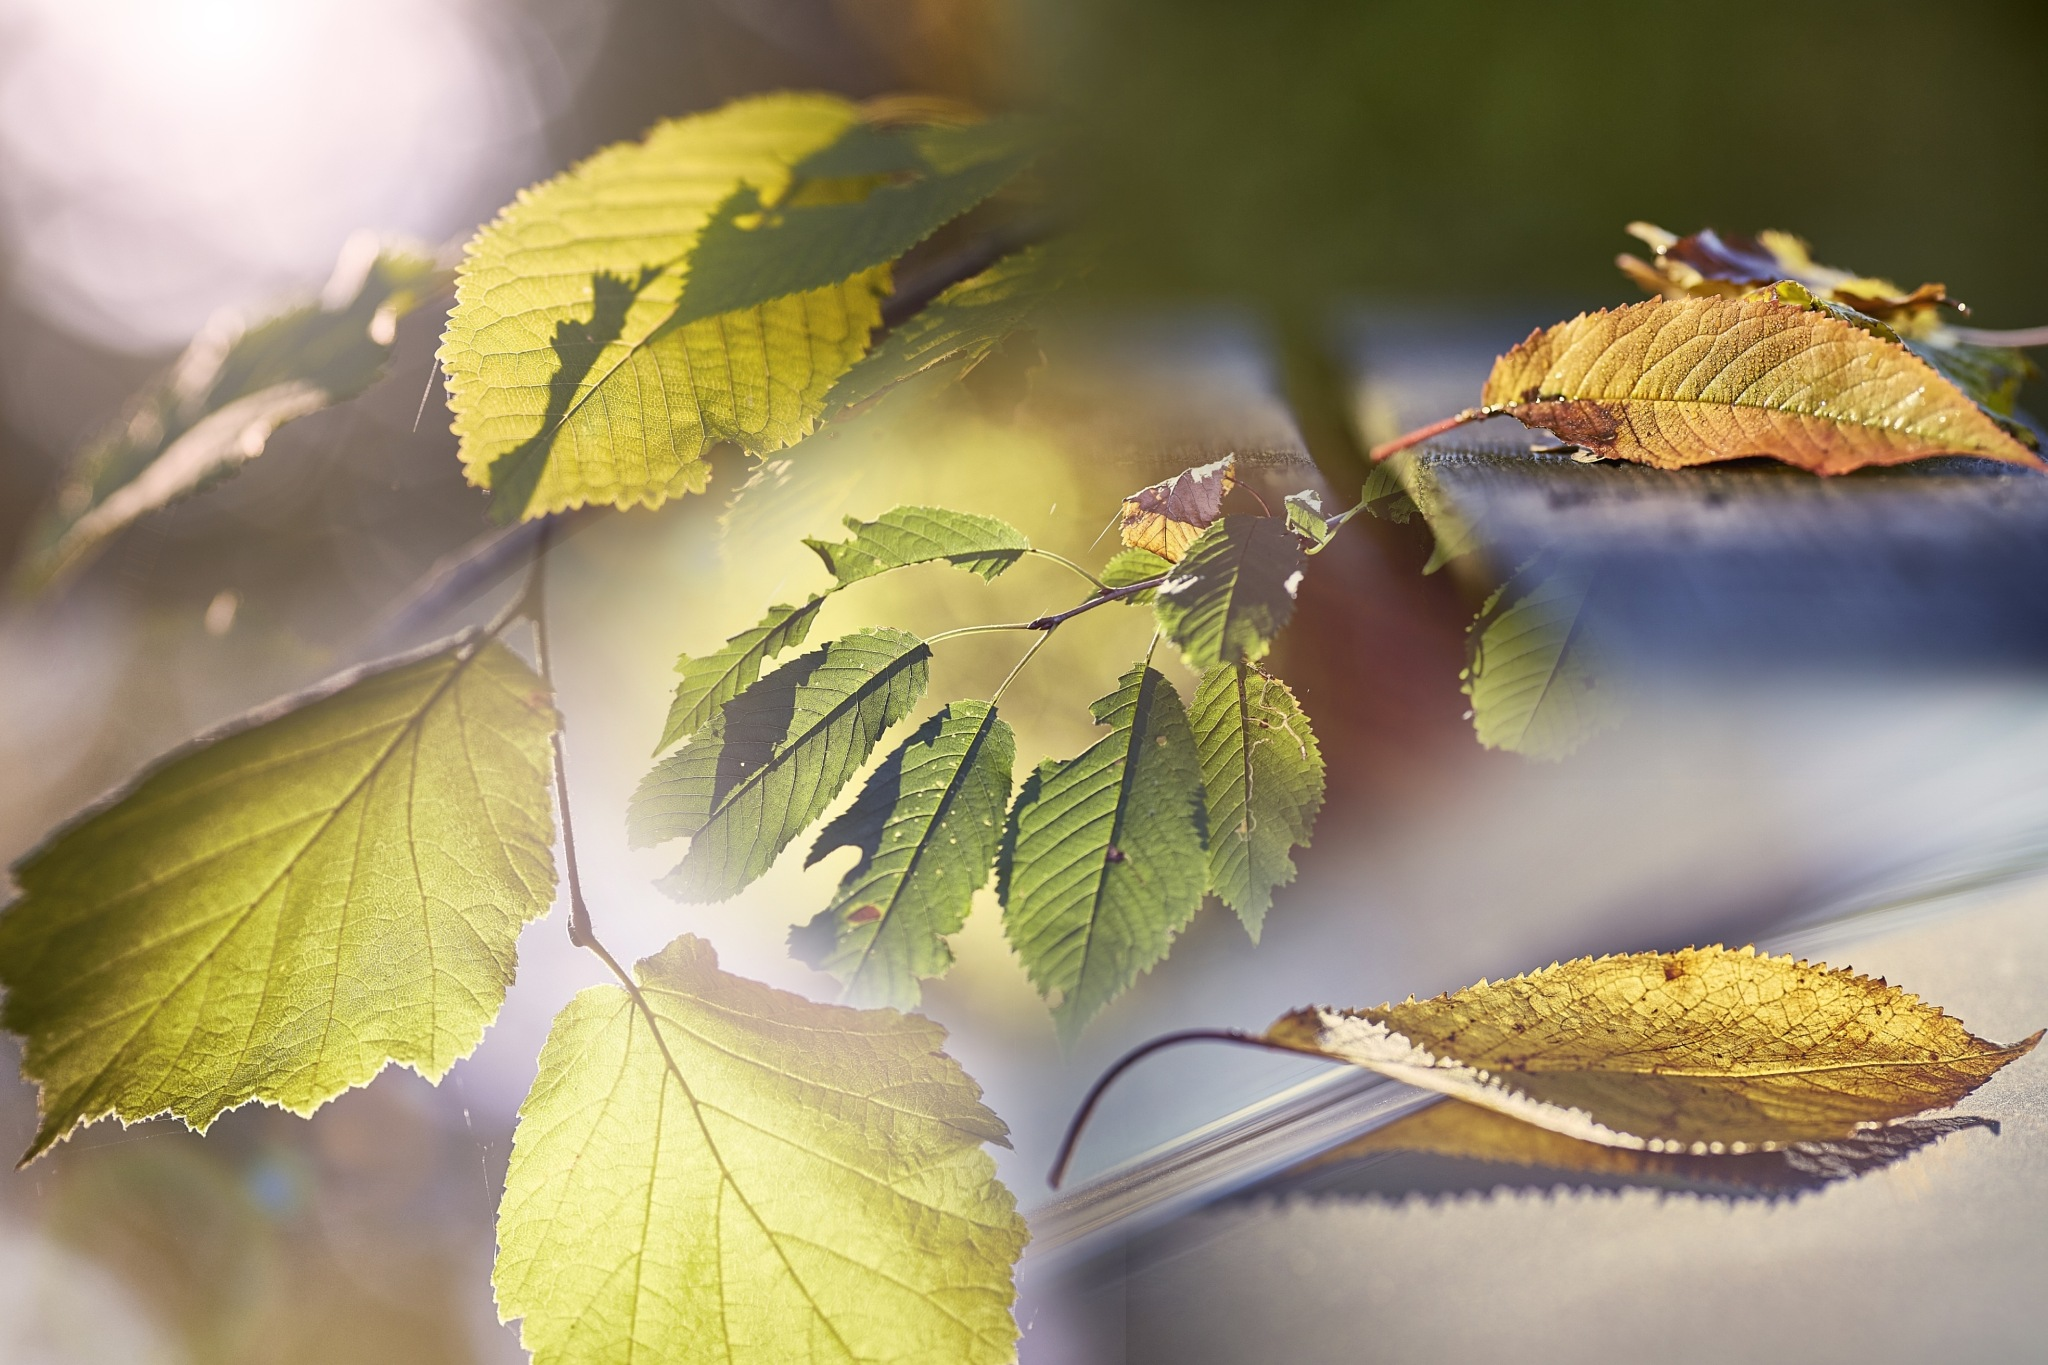 Autumnleaves by Roberto_69